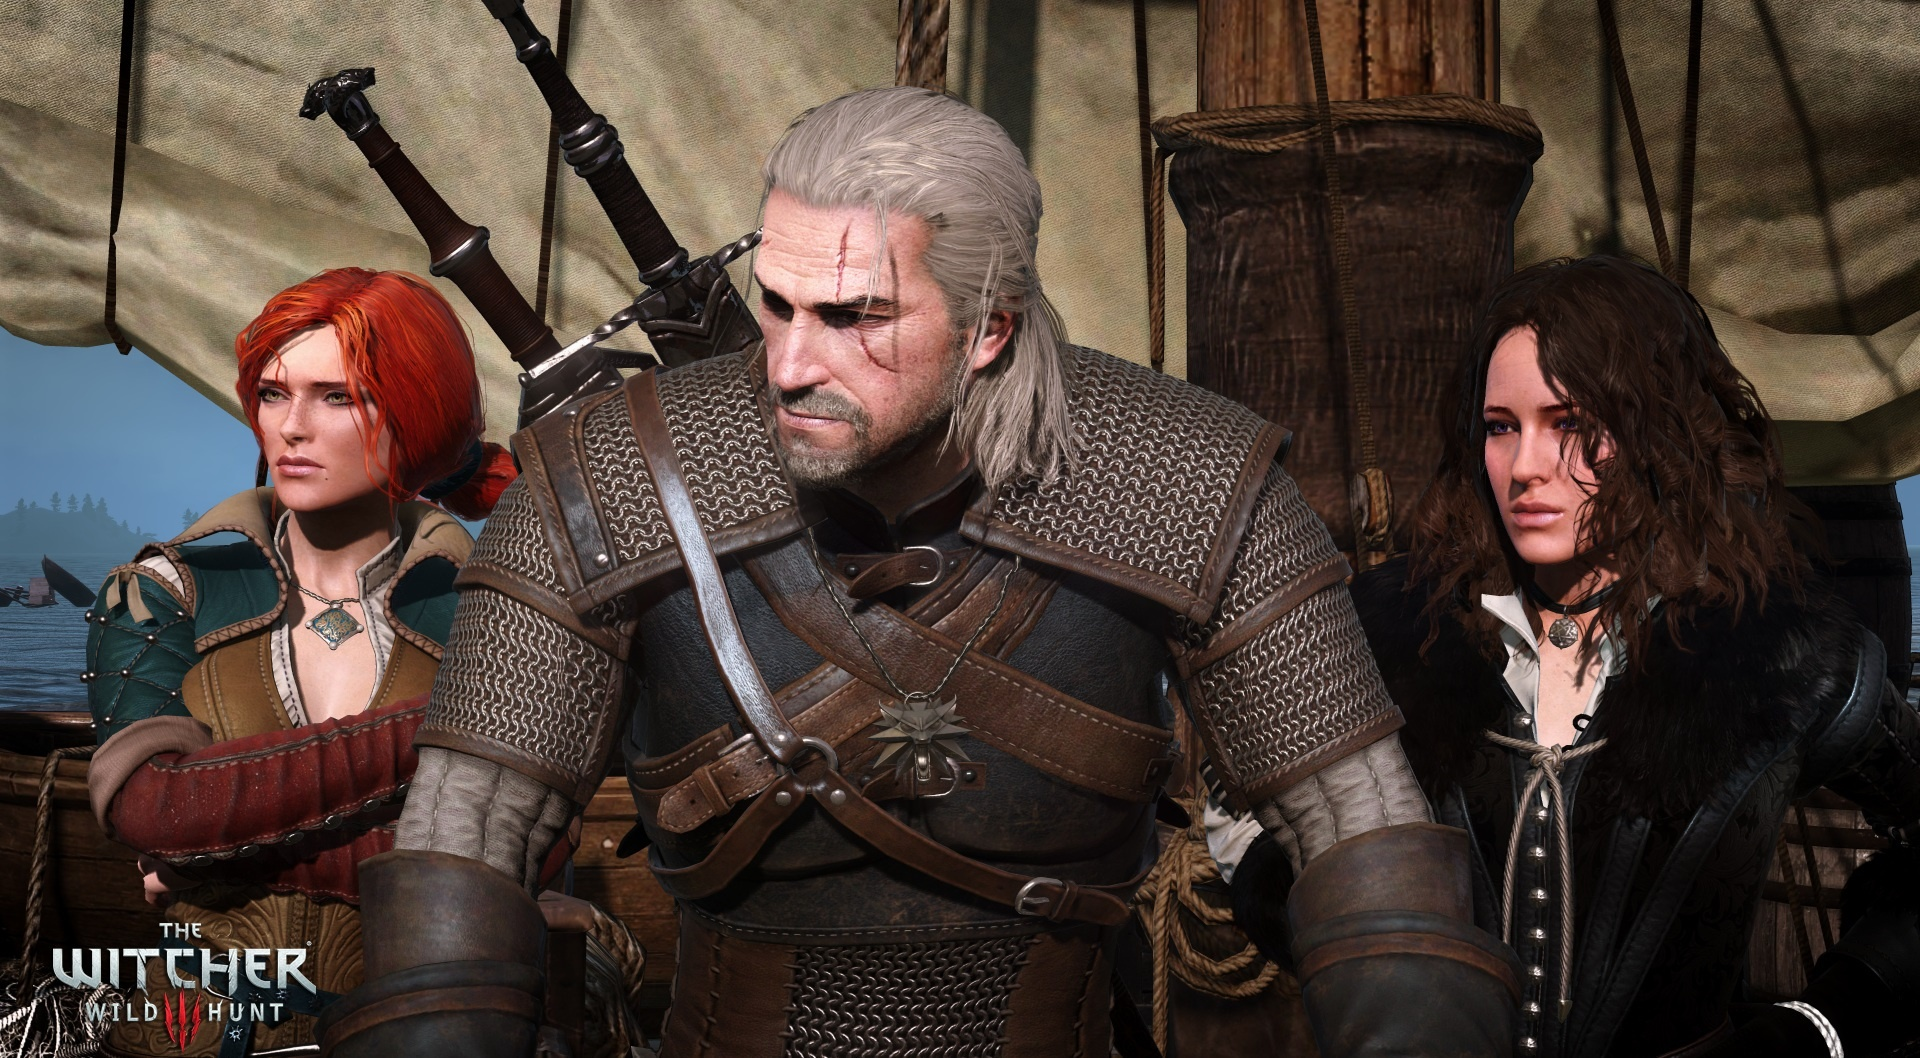 Image the witcher 3 wild hunt 25398 2651 0017